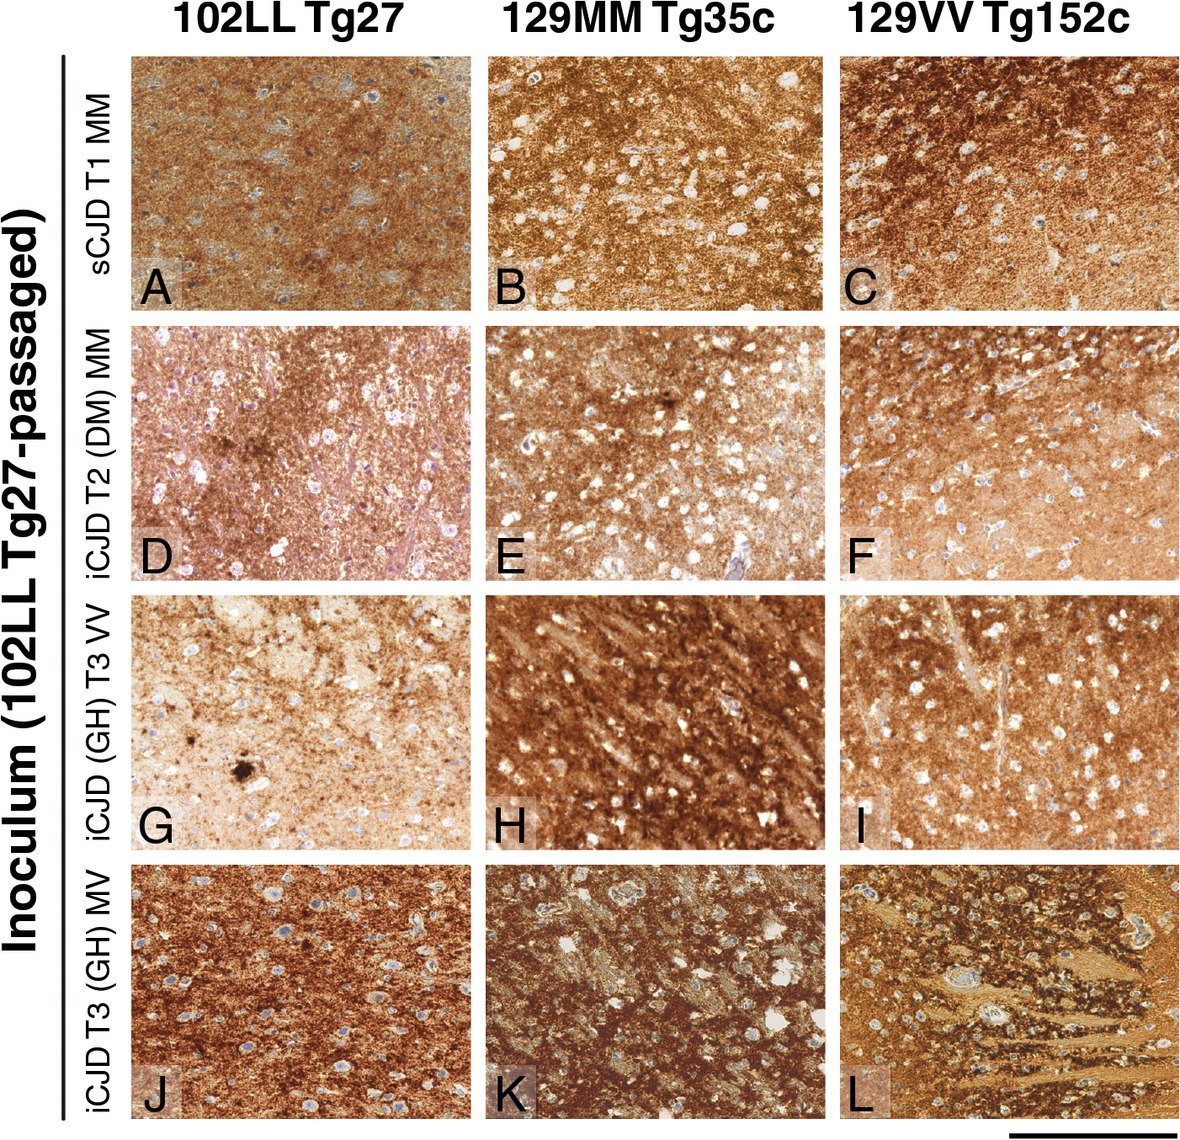 Immunohistochemical detection of abnormal PrP deposition in brains of transgenic mice challenged with CJD-102L prions.